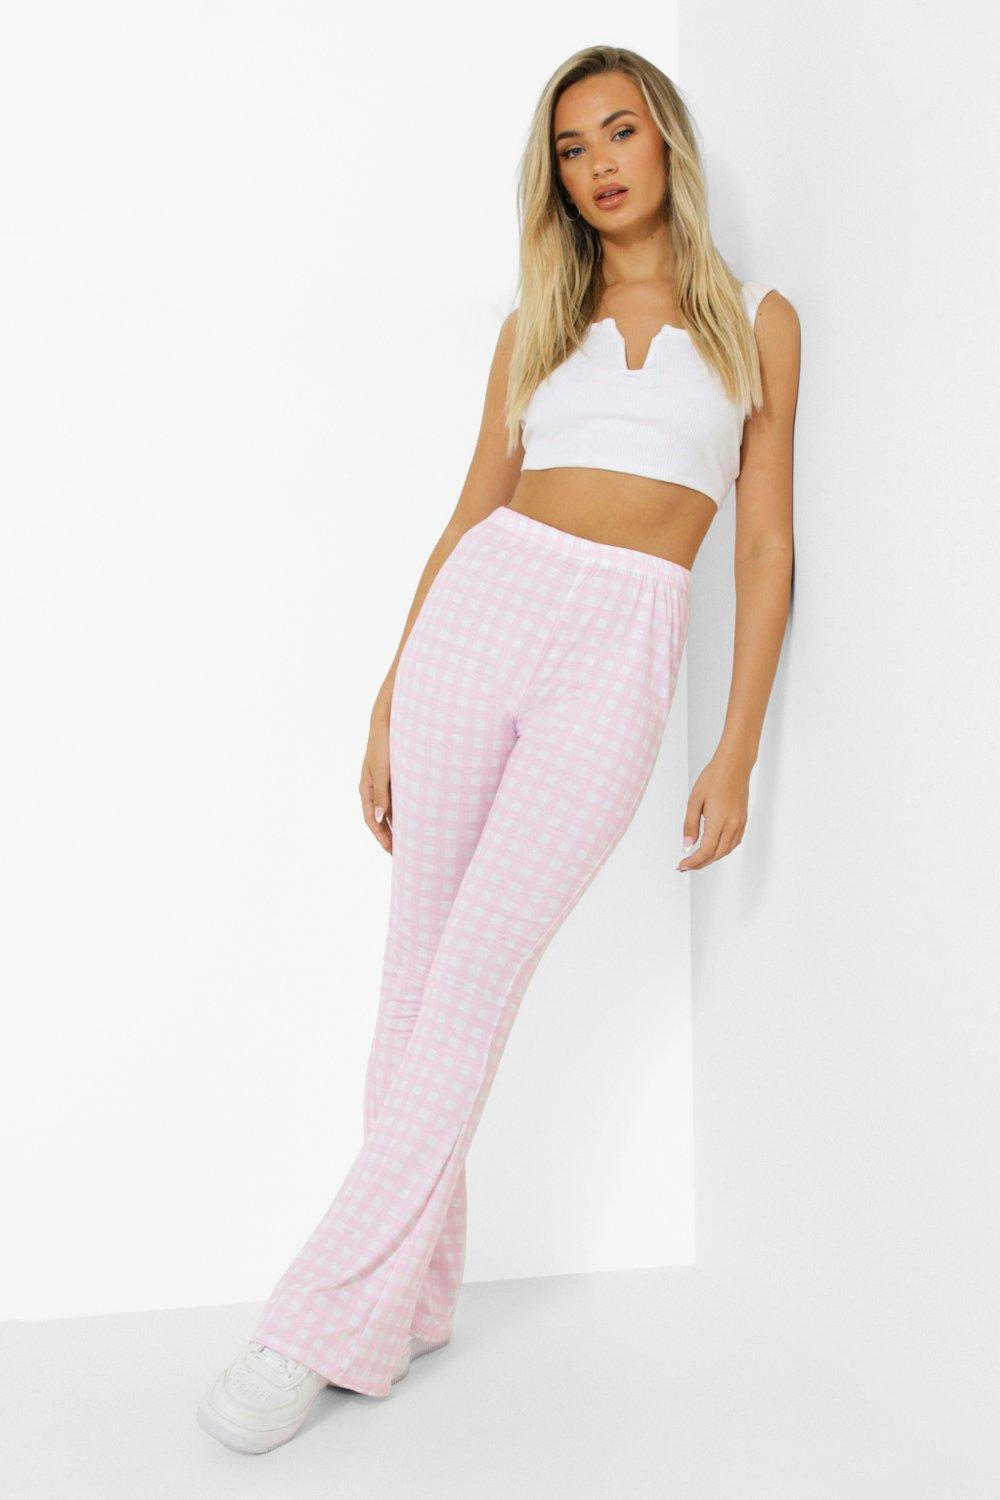 1960s Pants – Top 10 Styles for Women Womens Gingham Flare Jersey Pants - Pink - 12 $12.80 AT vintagedancer.com